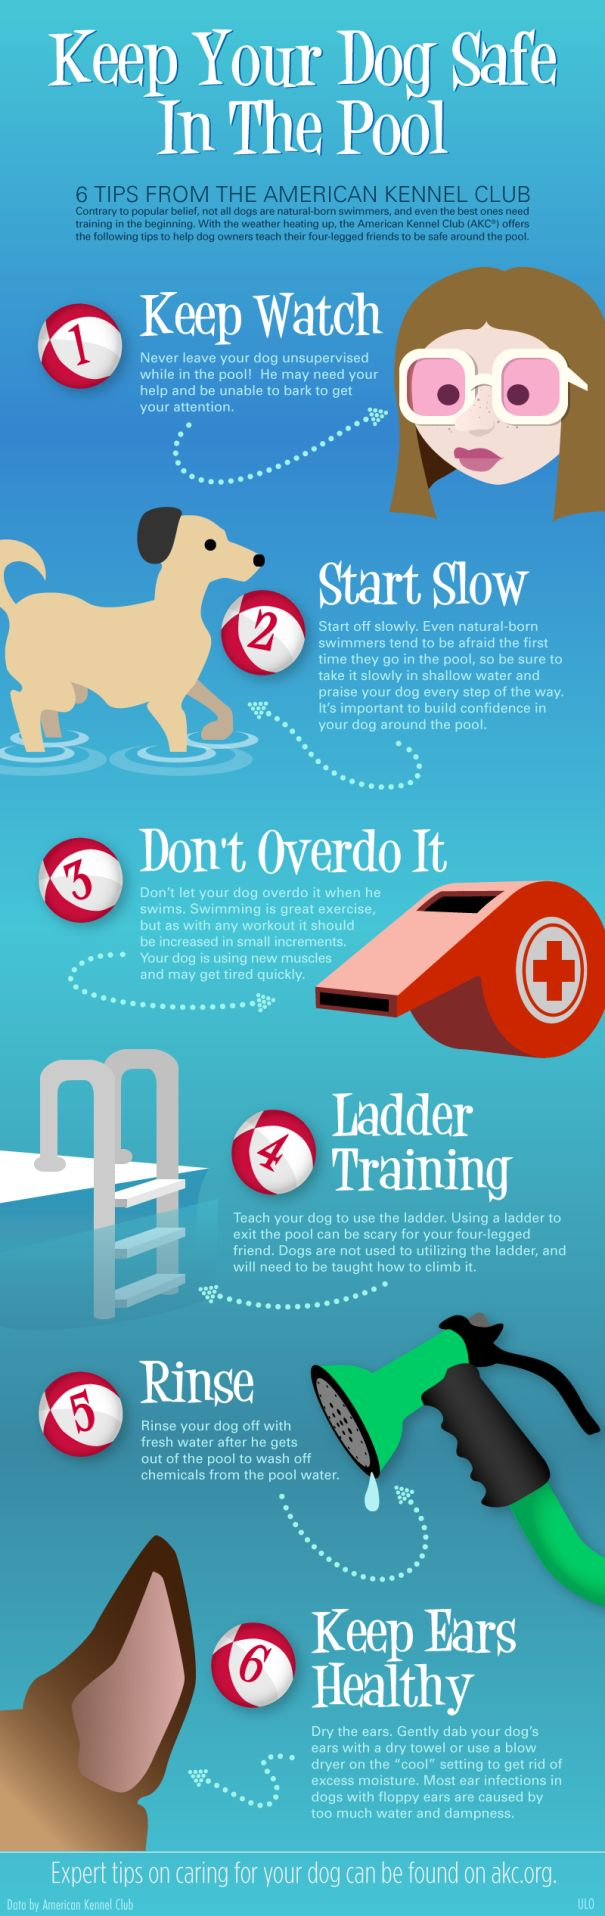 Pet Safety Infographic - keep your pet safe in and around pools in the summer